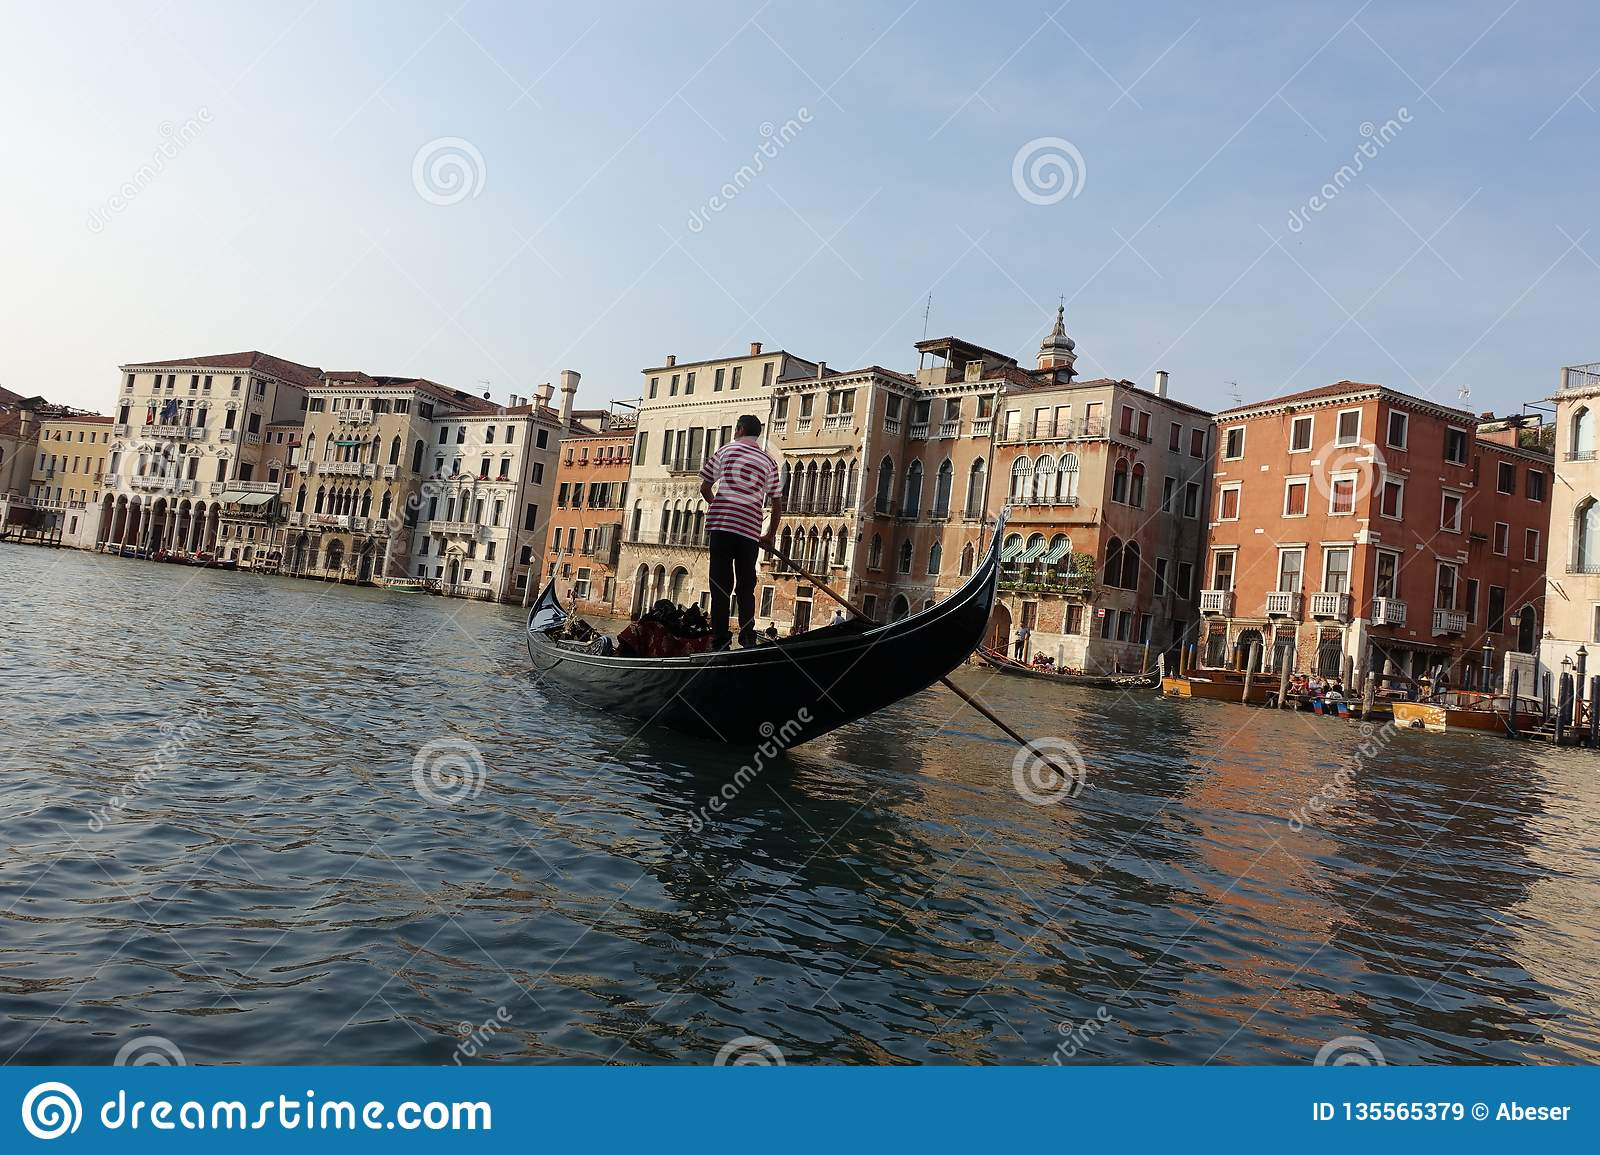 Venice Venedig Gondolas In Venice Italy Editorial Stock Image Image Of